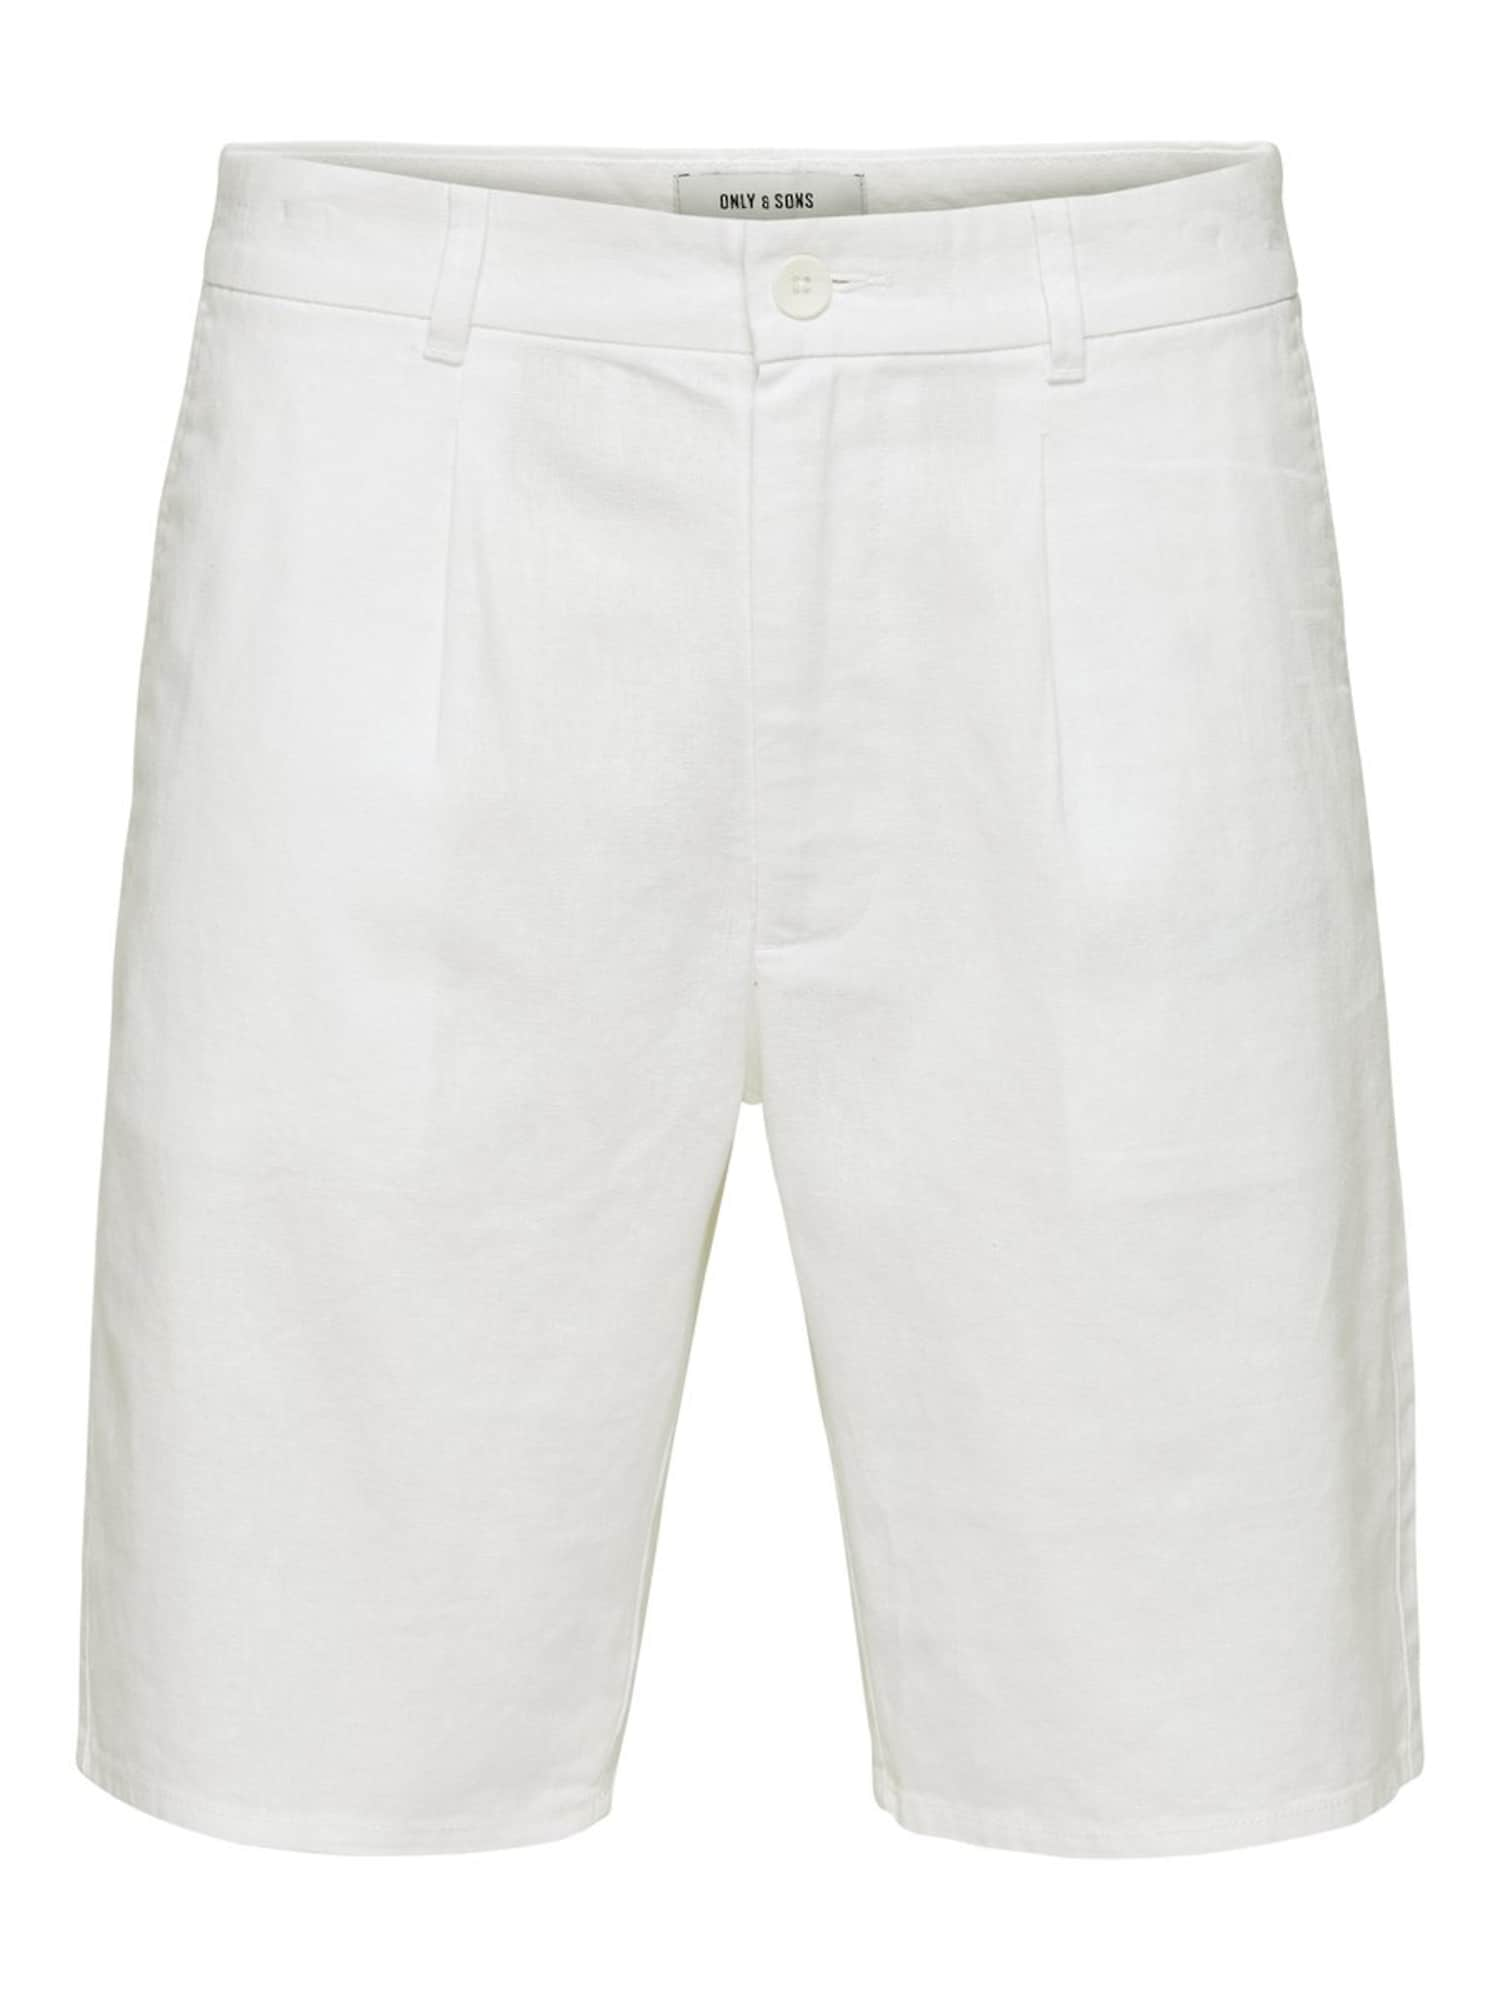 Only & Sons Chino stiliaus kelnės balta